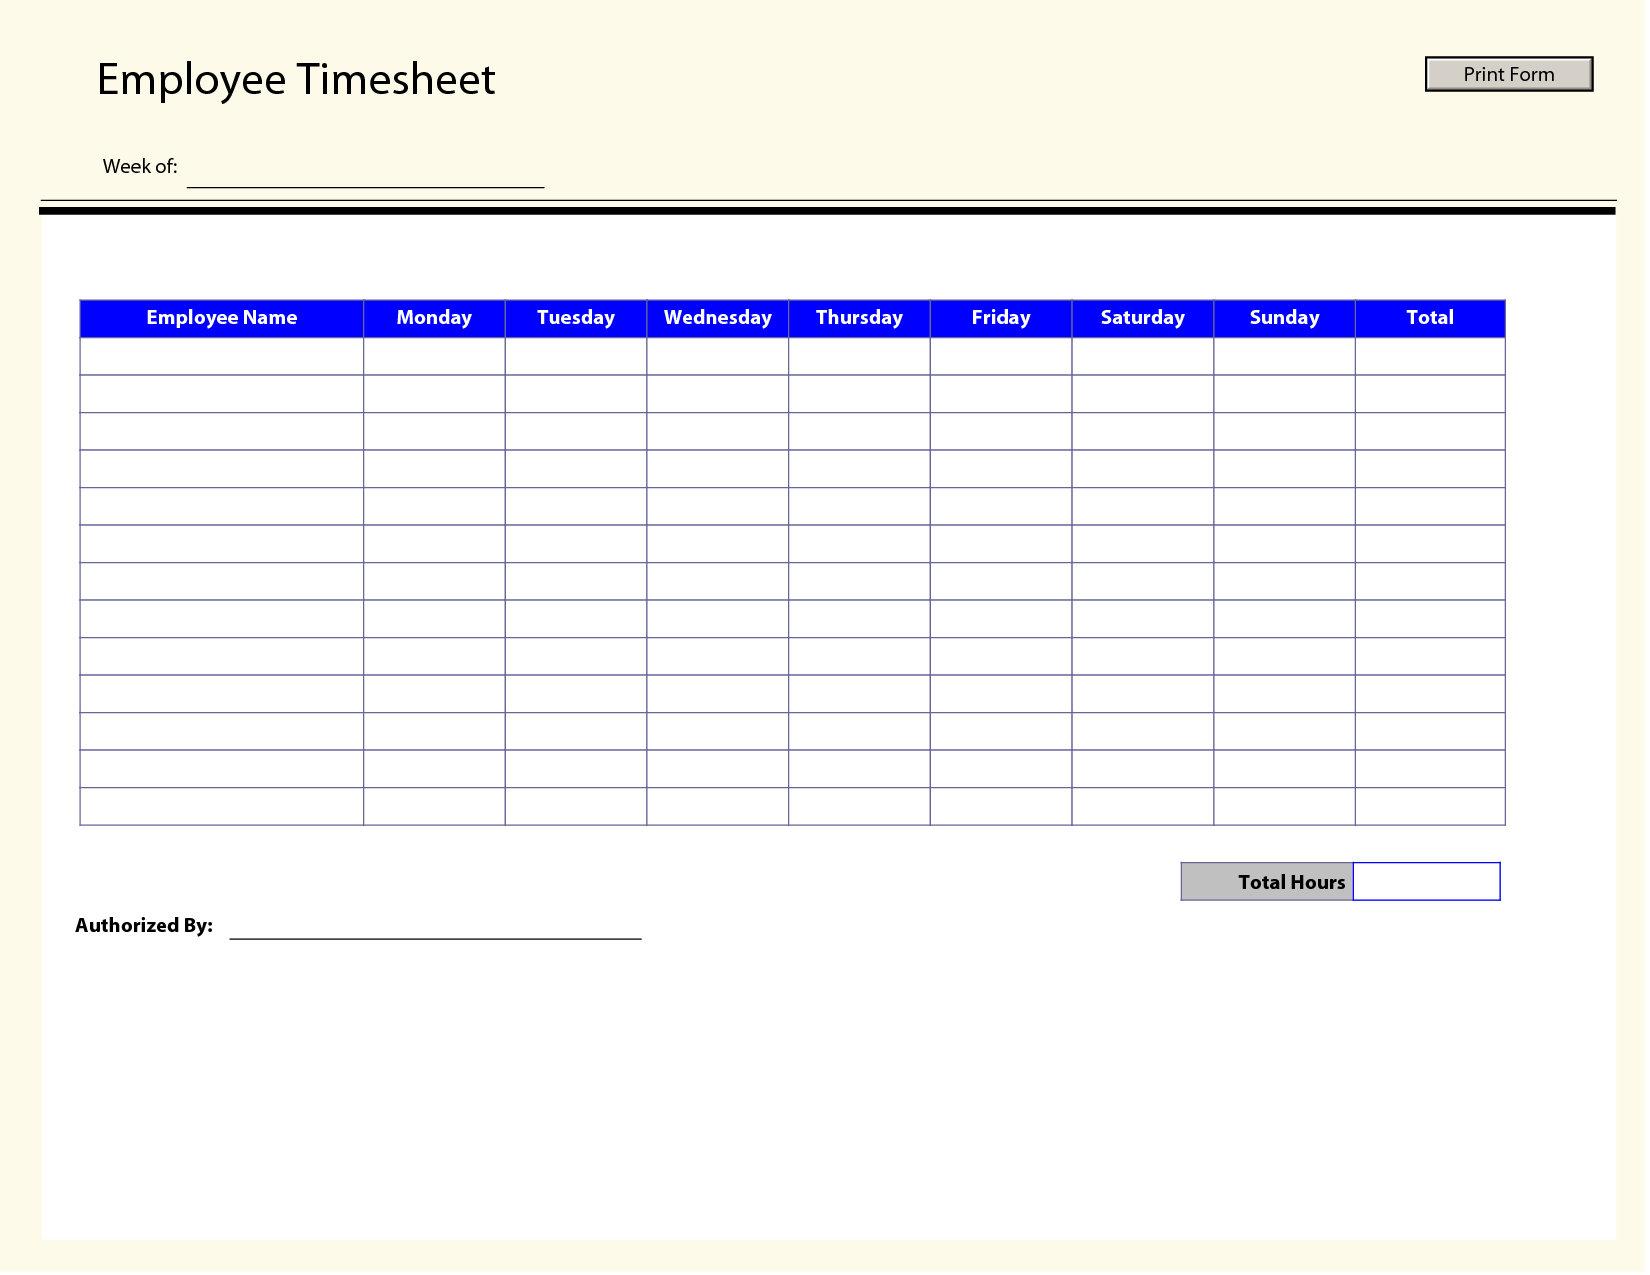 printable time sheets | Free printable employee timesheets ...